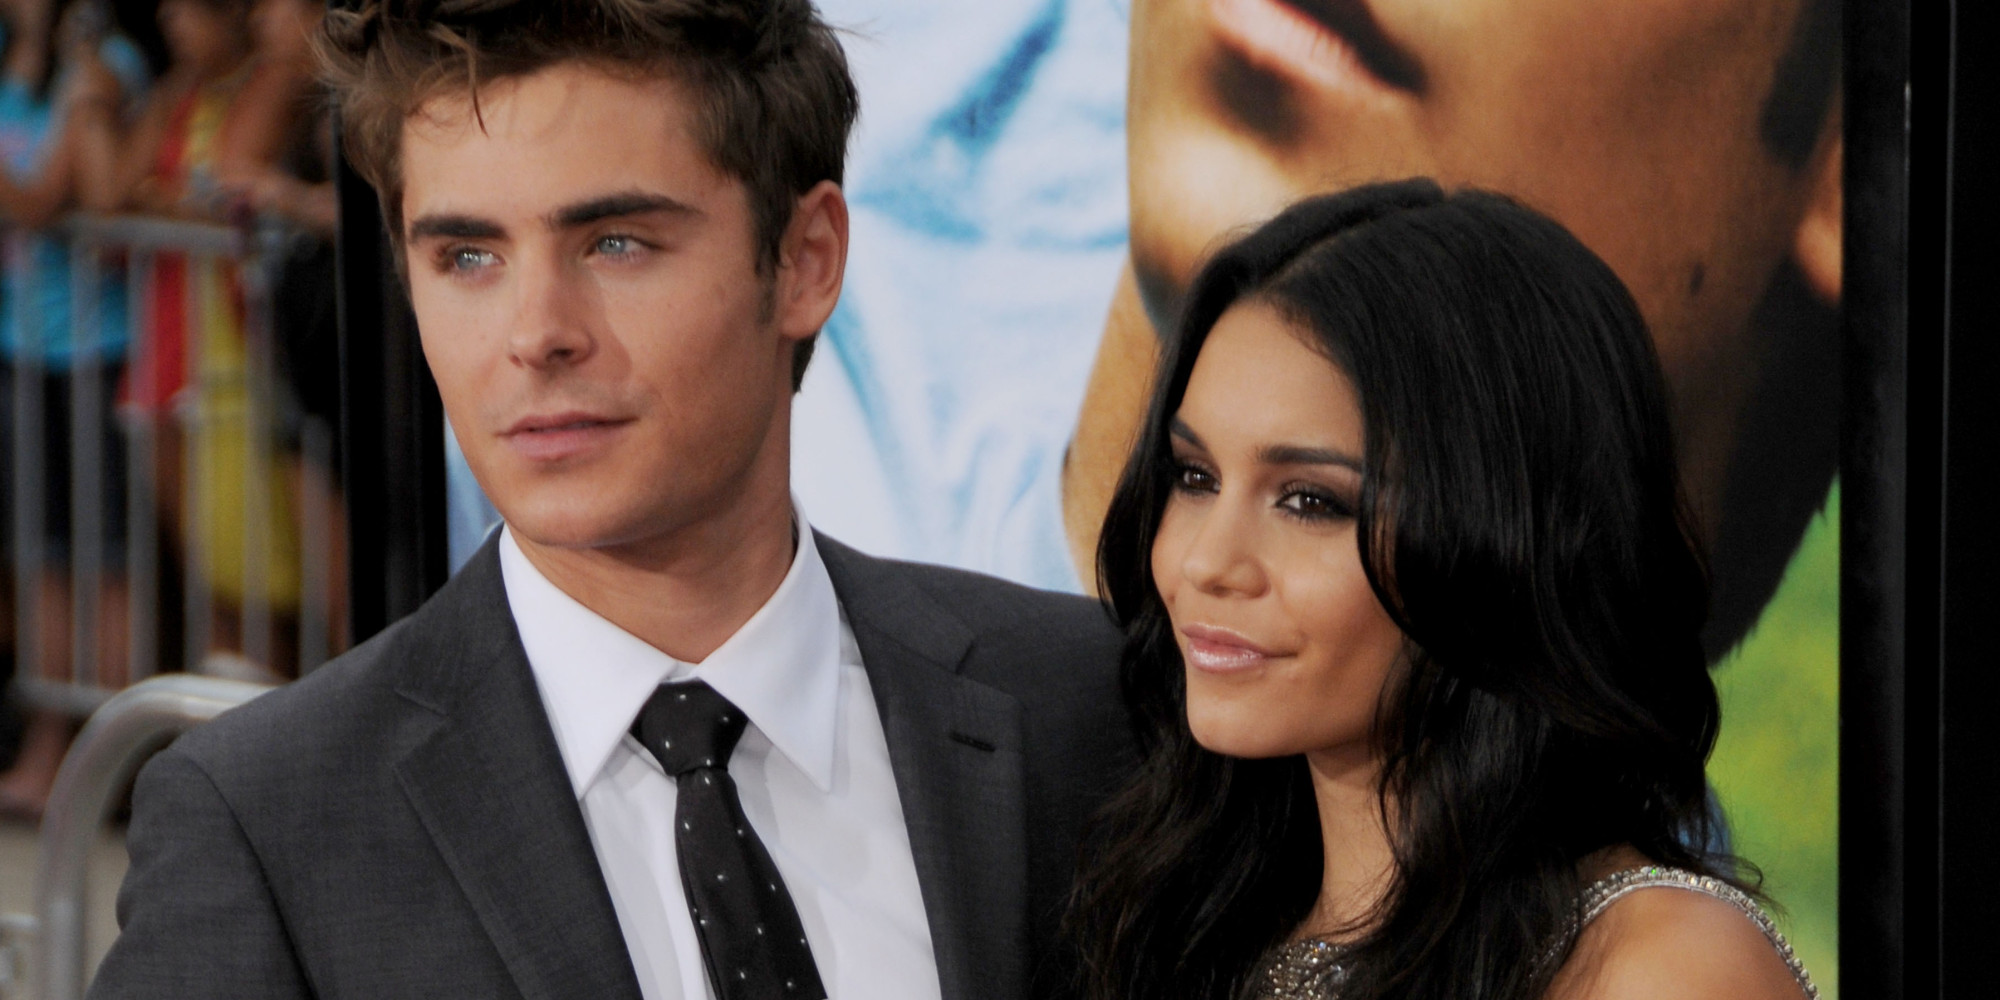 zac efron and vanessa hudgens start dating